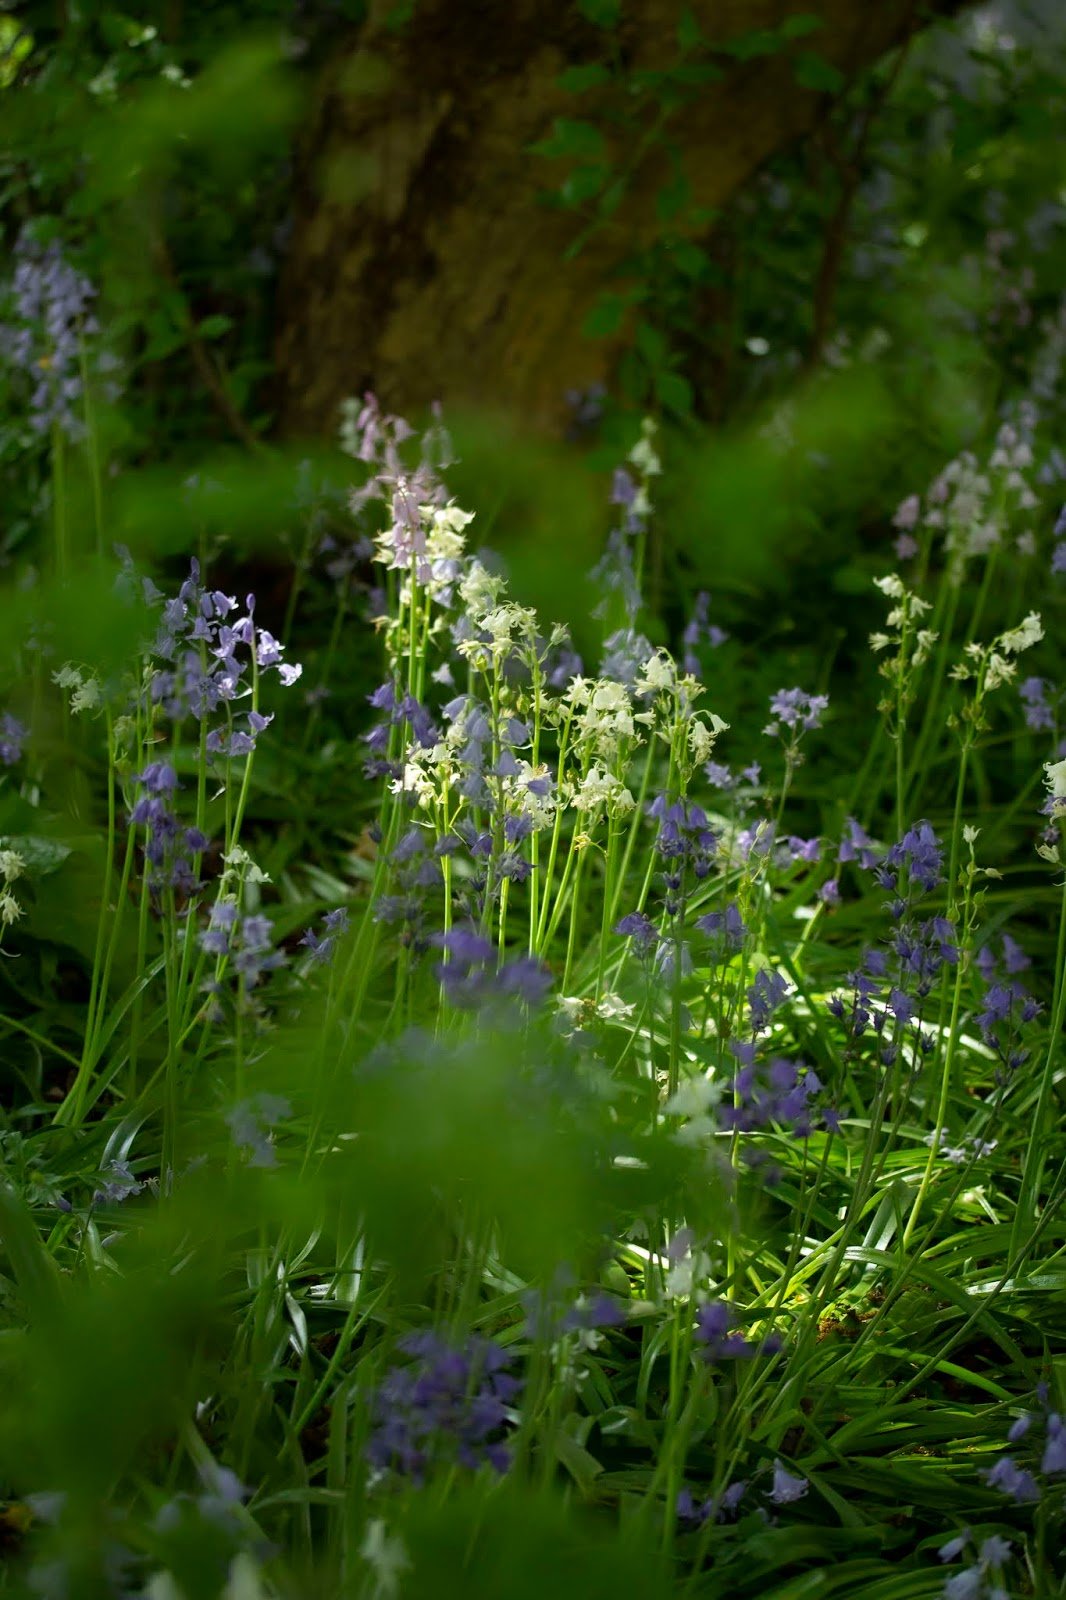 Hide and seek in the bluebells